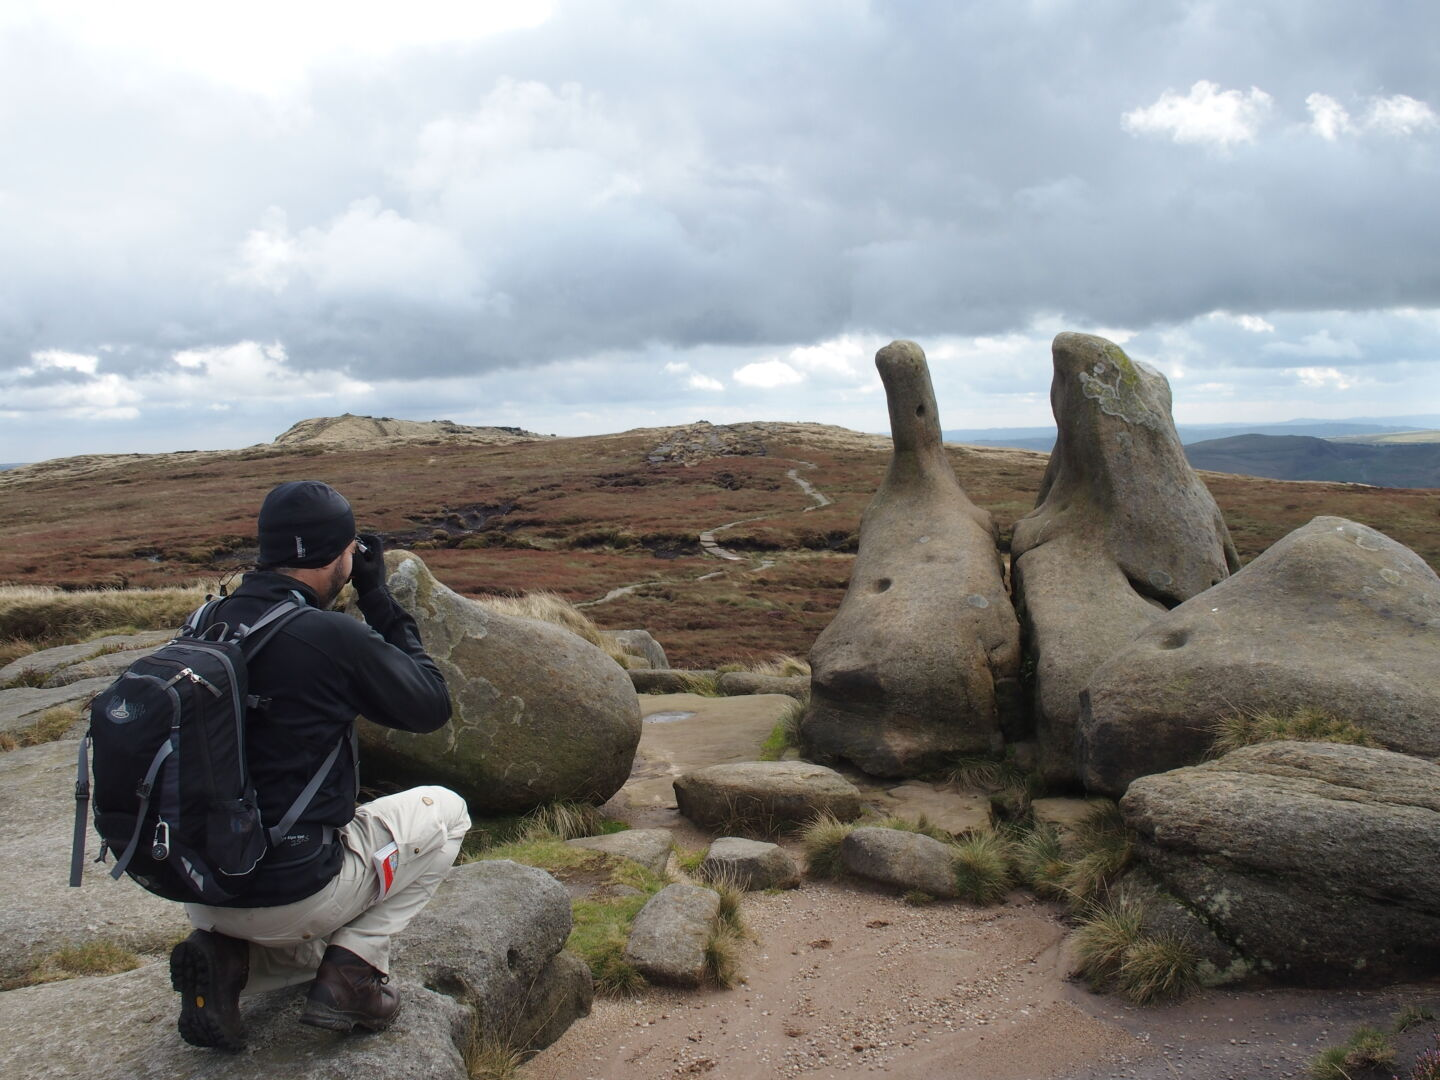 Taking pictures on Kinder Scout.